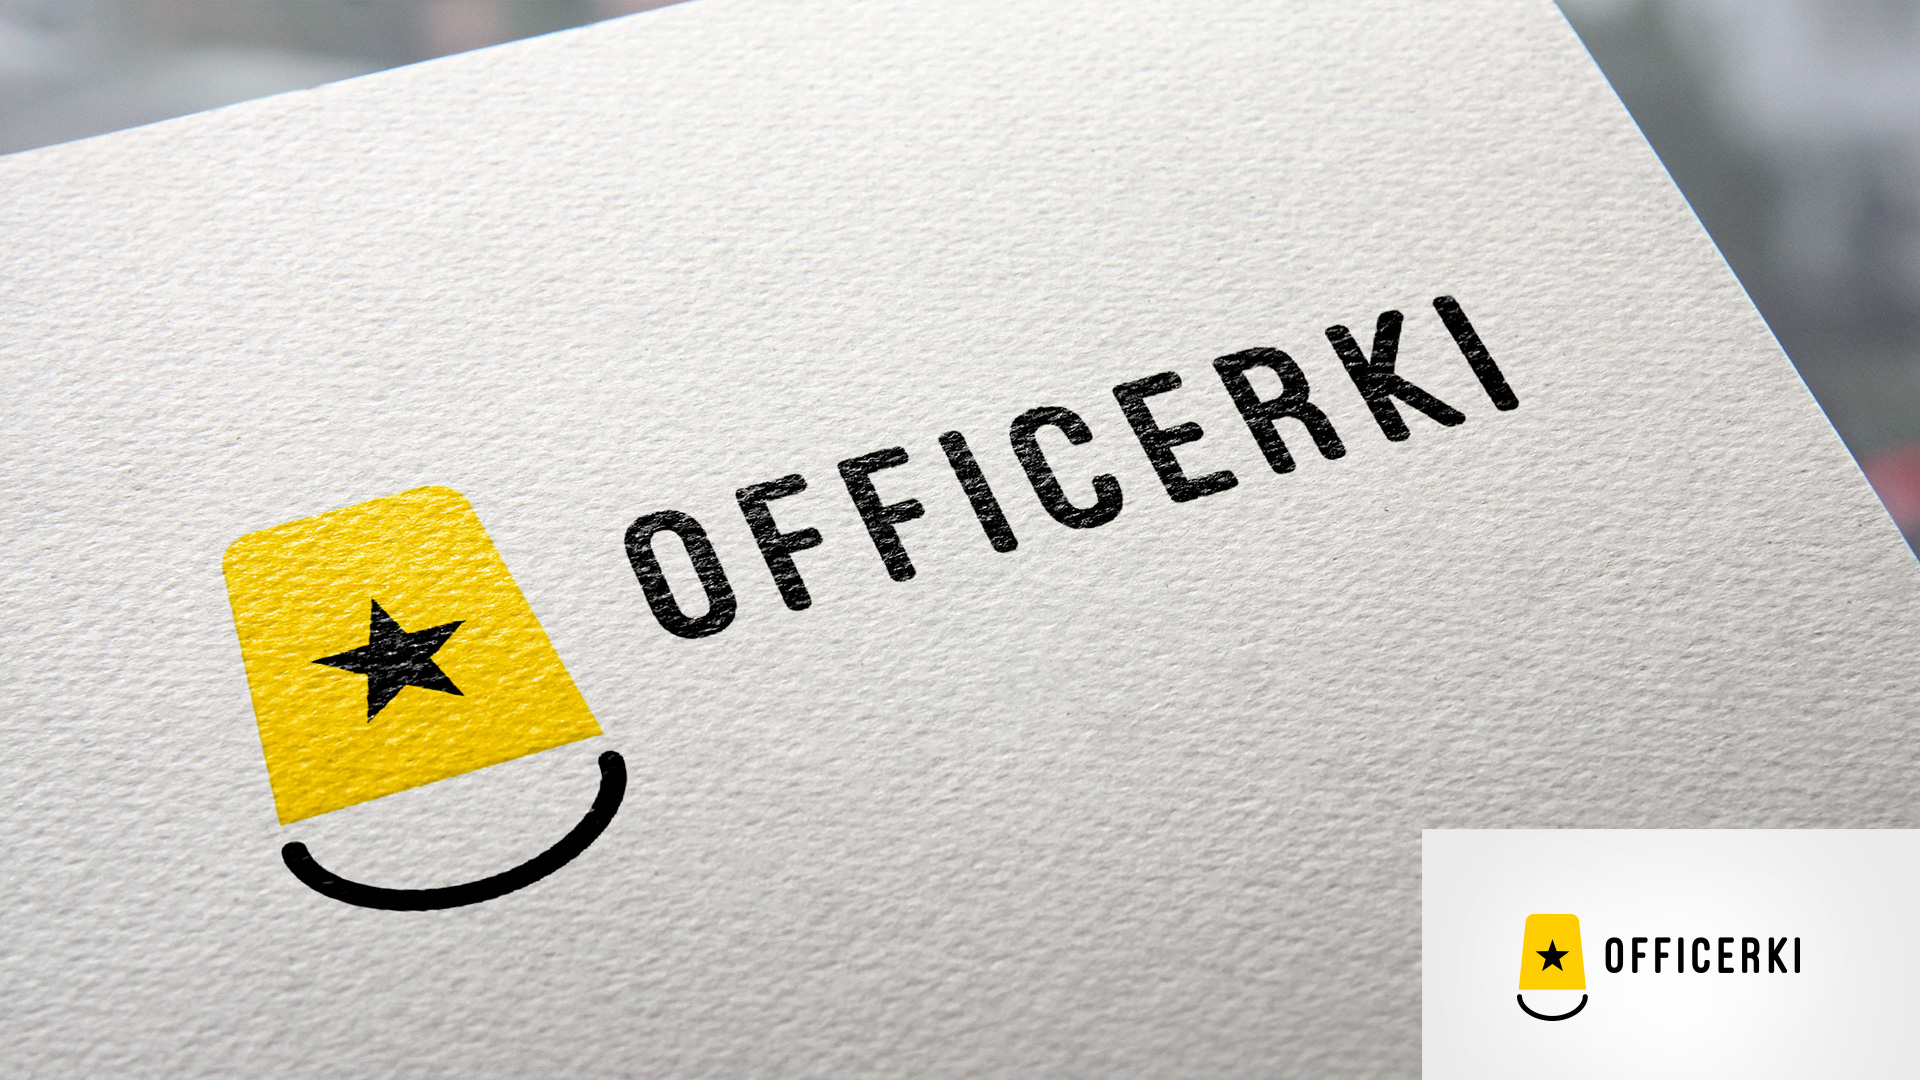 officerki-logo-3